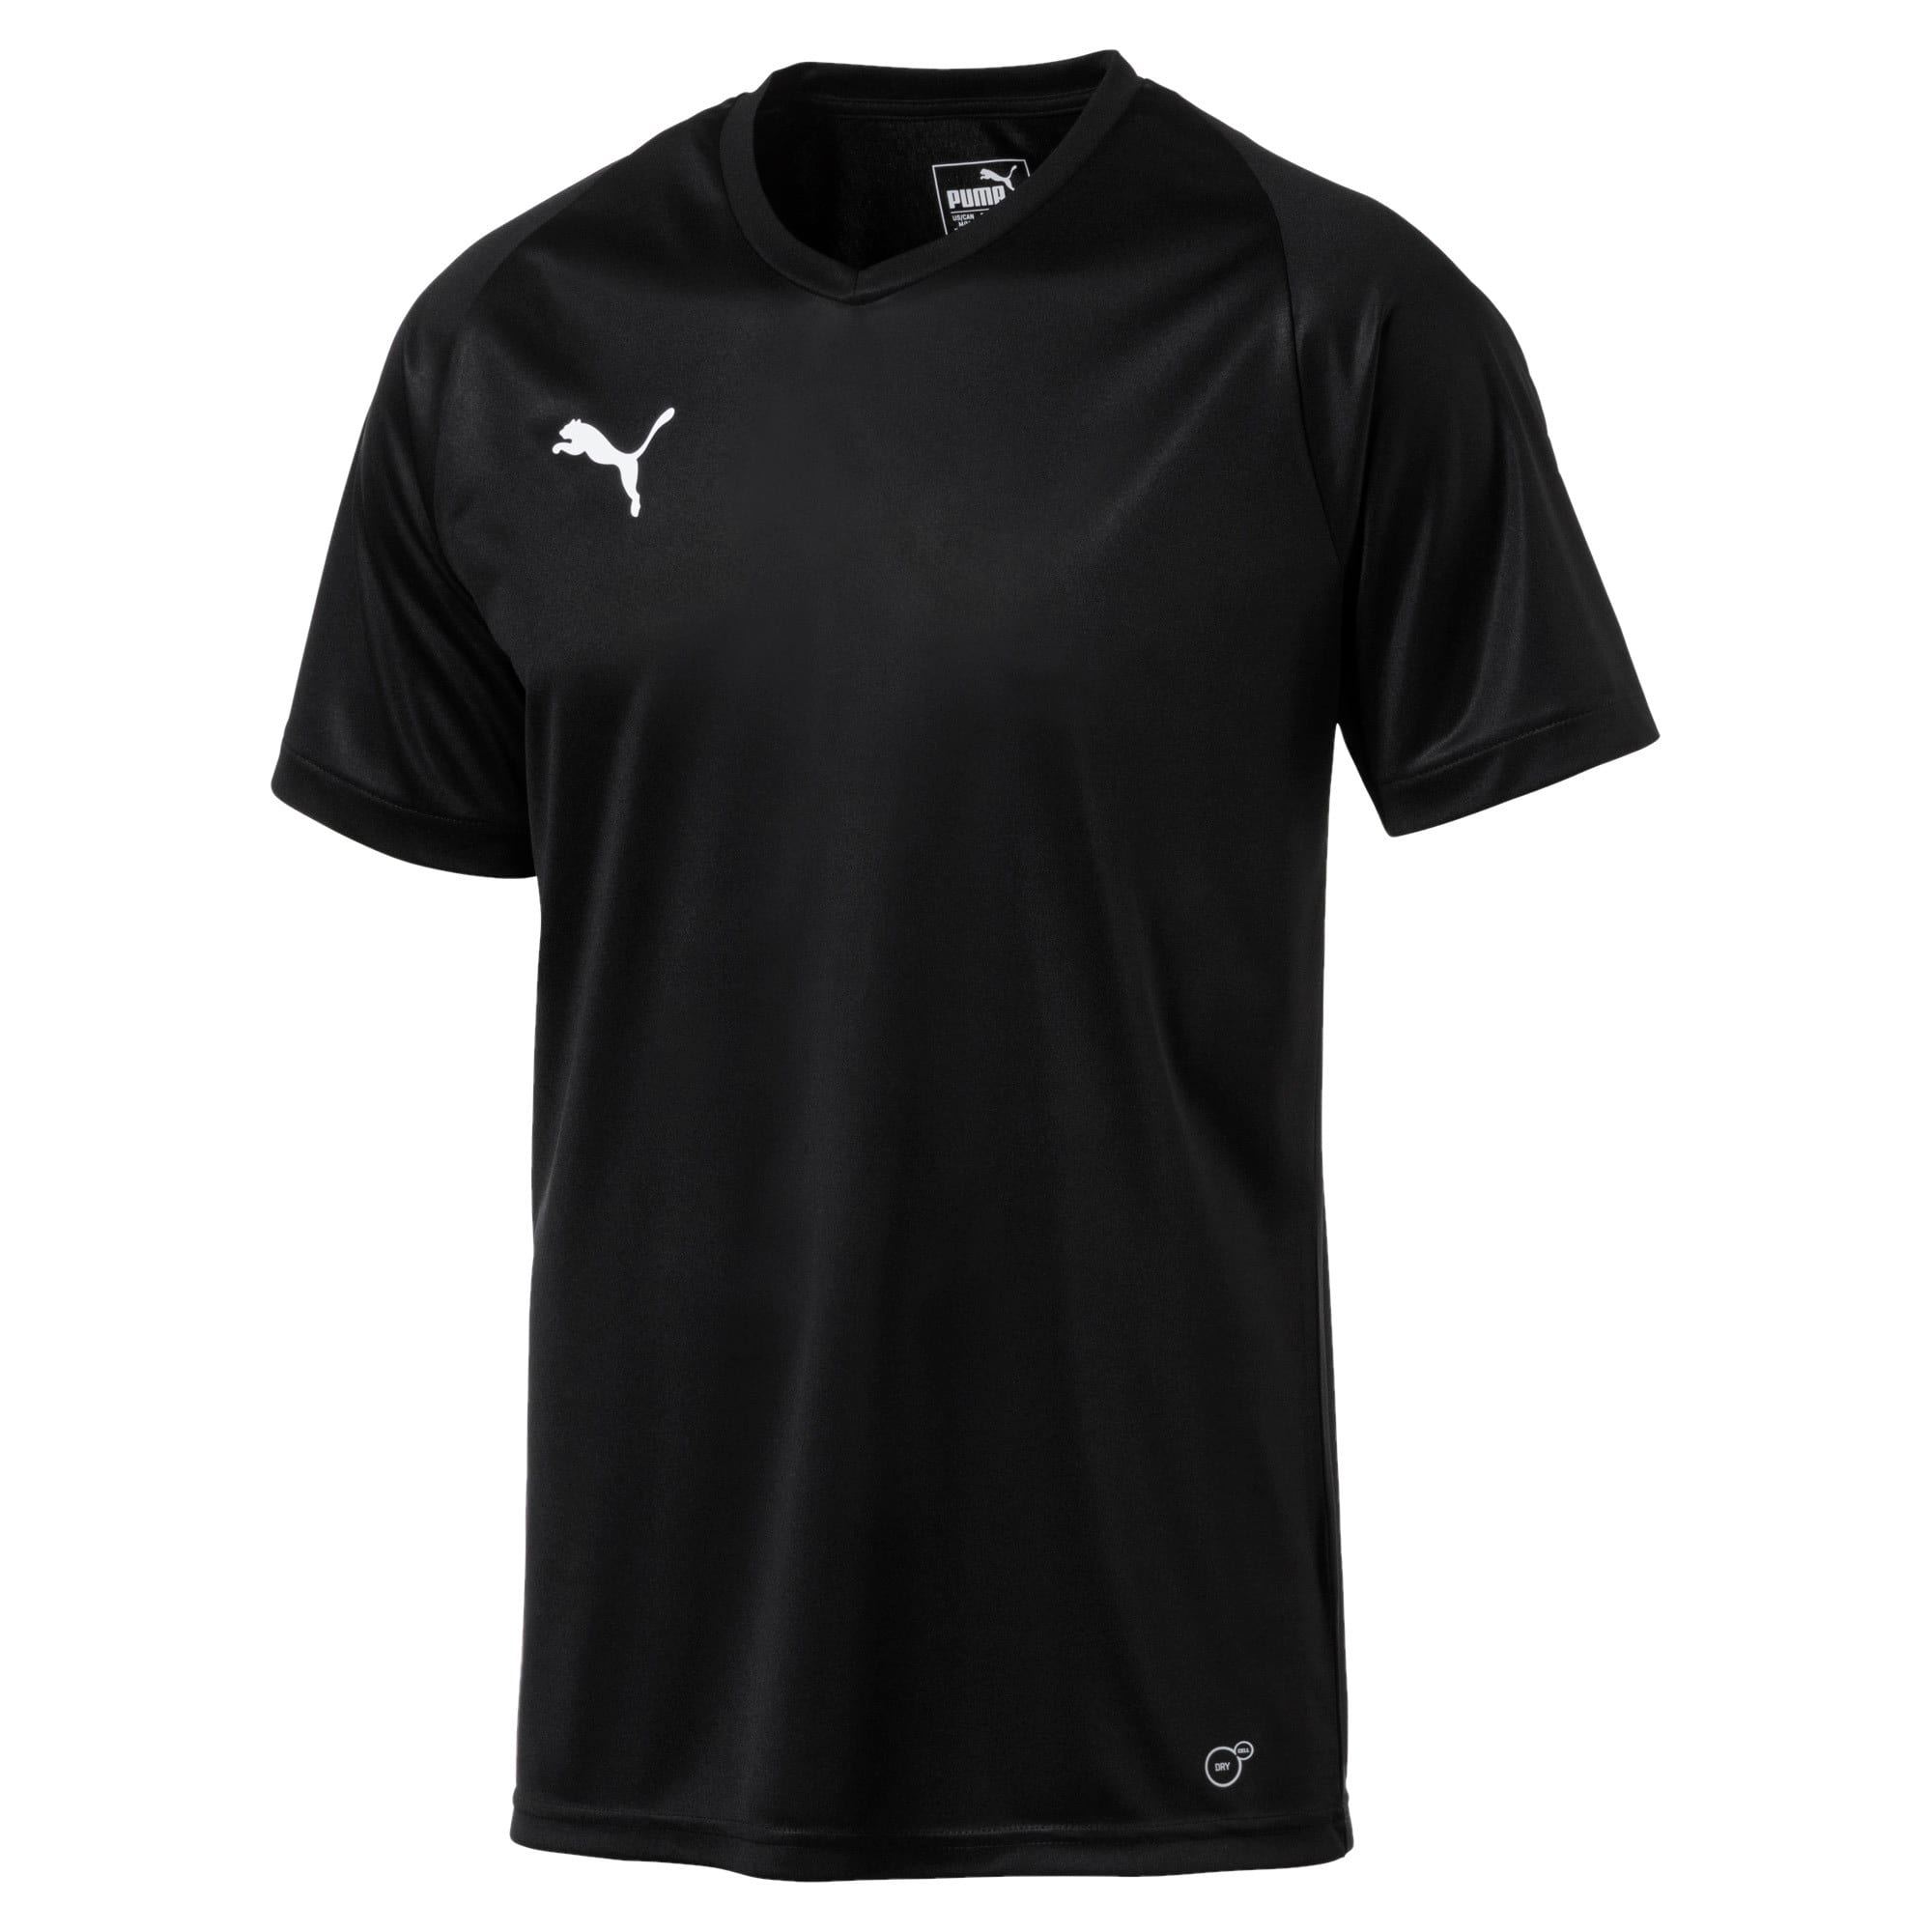 Thumbnail 4 of Liga Core Men's Jersey, Puma Black-Puma White, medium